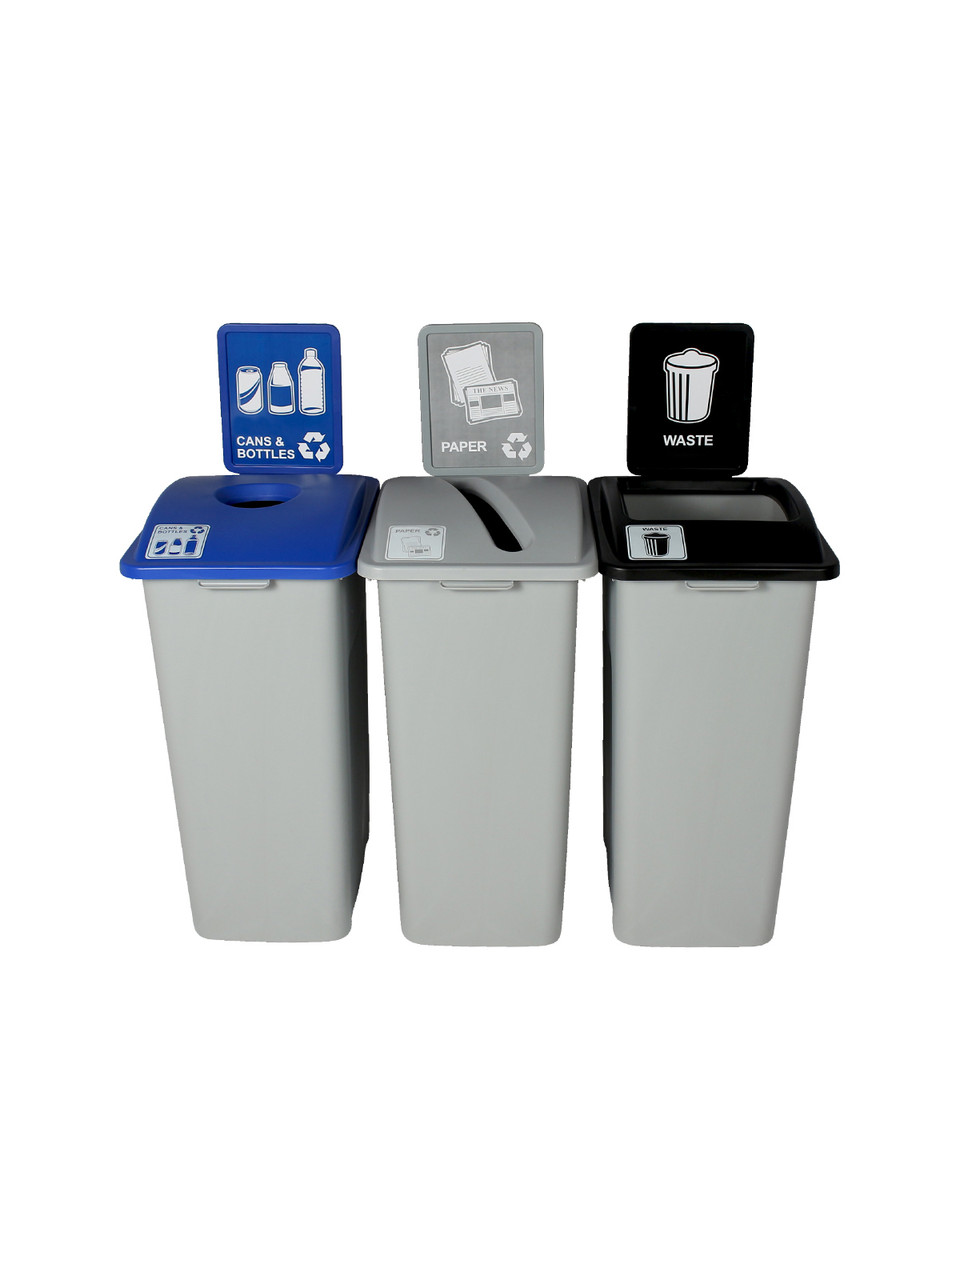 96 Gallon Simple Sort Skinny Recycling Center 8111058-134 (Circle, Paper, Waste)